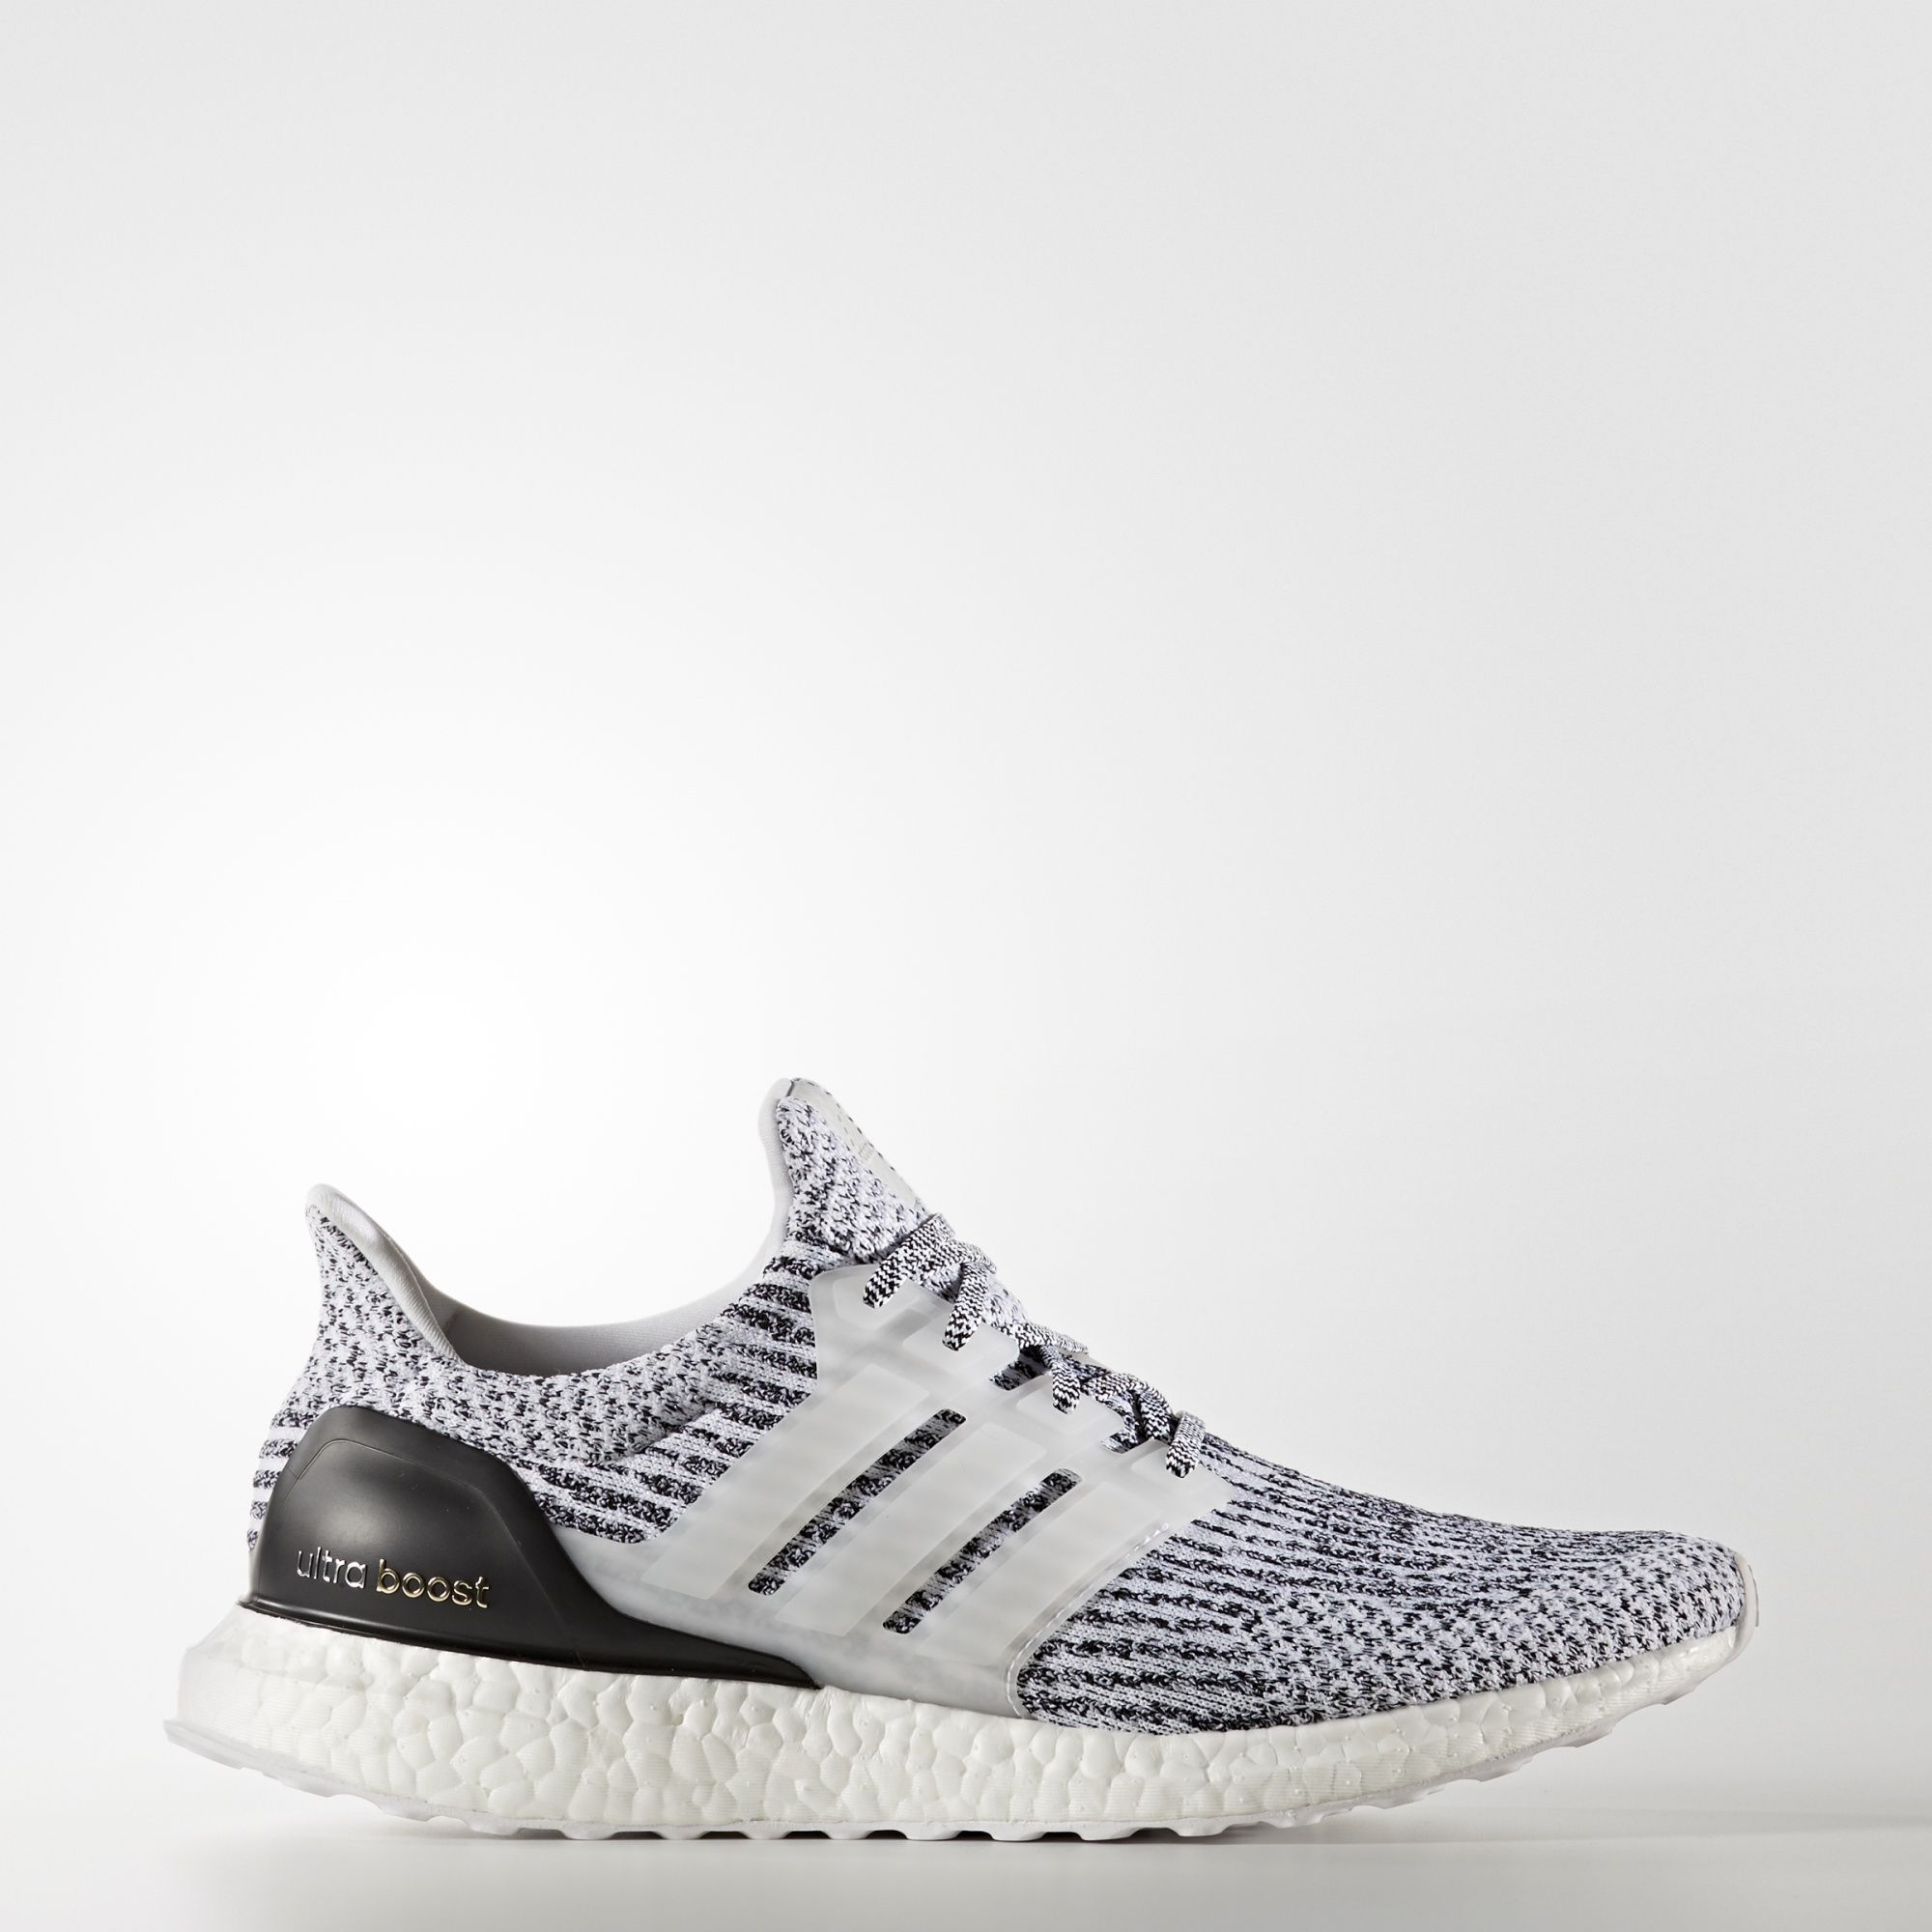 adidas Ultra Boost 3.0 Pearl Grey